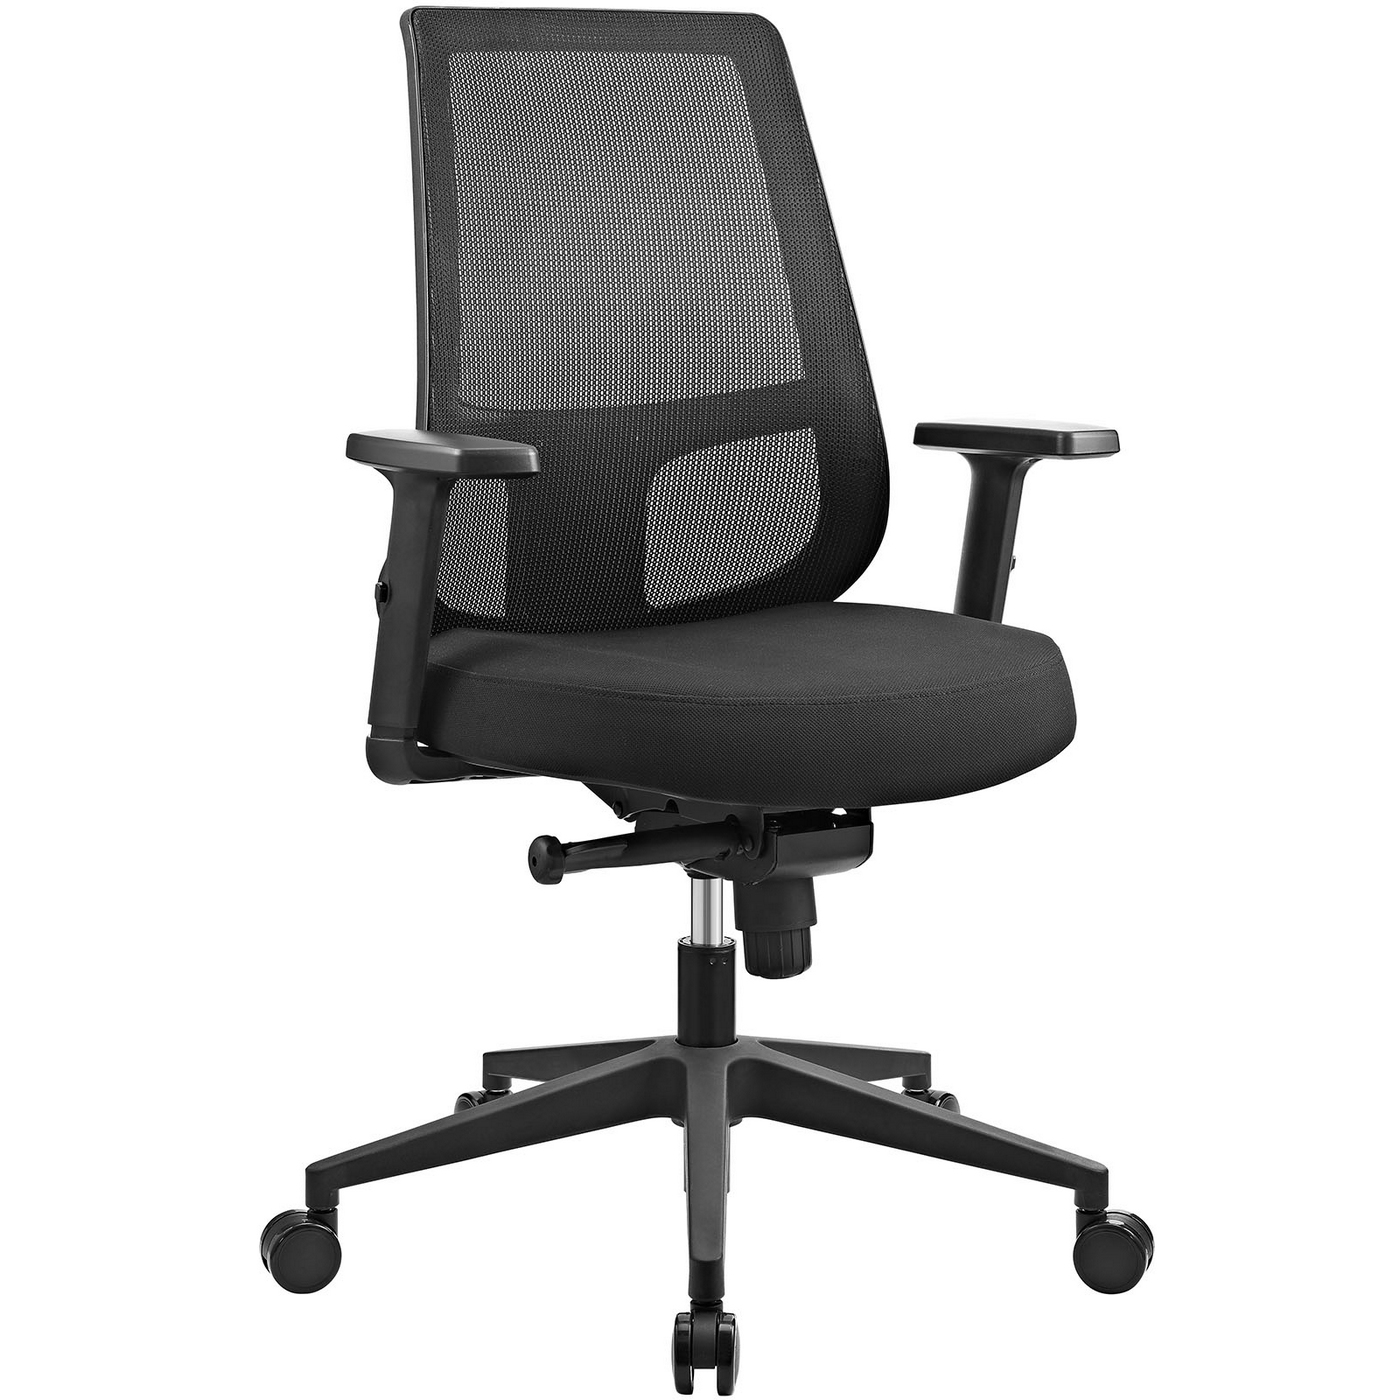 Back Support Chair Pump Ergonomic Mesh Back Office Chair With Lumbar Support